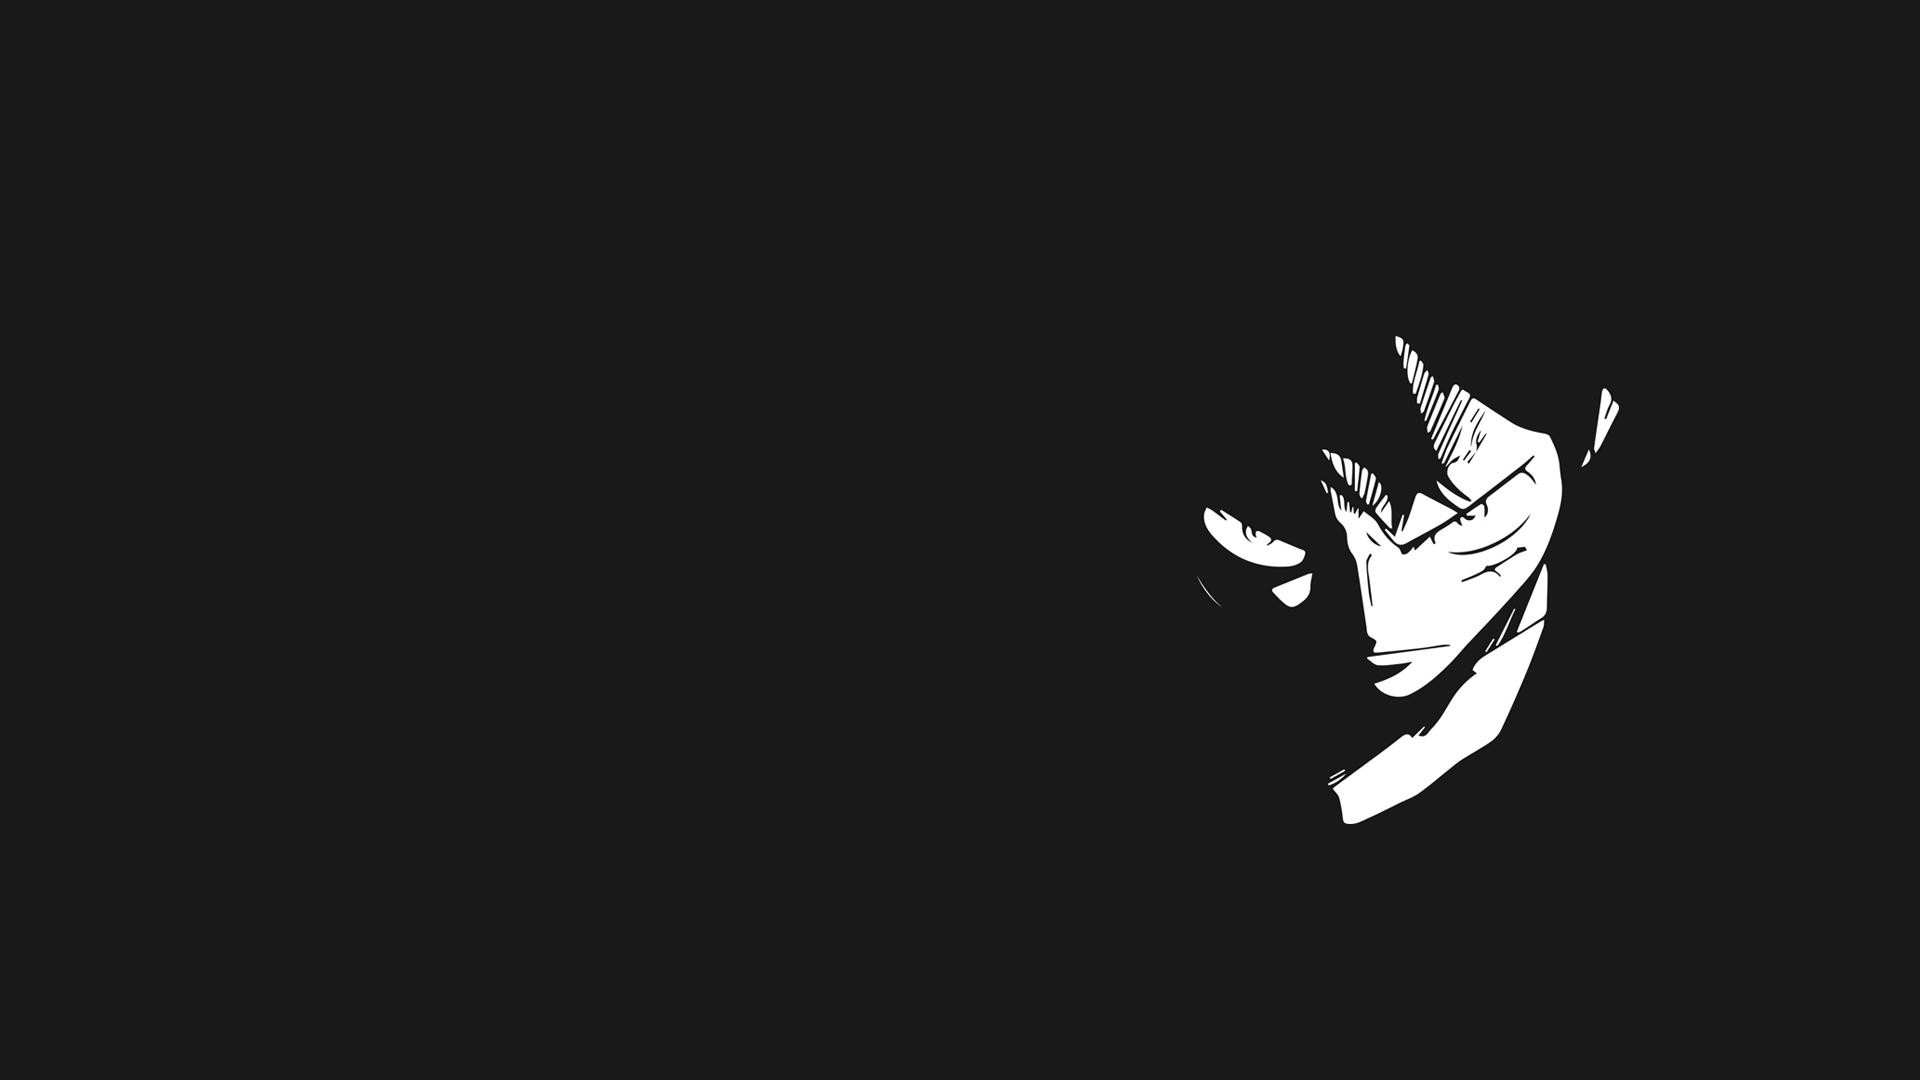 Black One Piece Wallpapers On Wallpaperdog